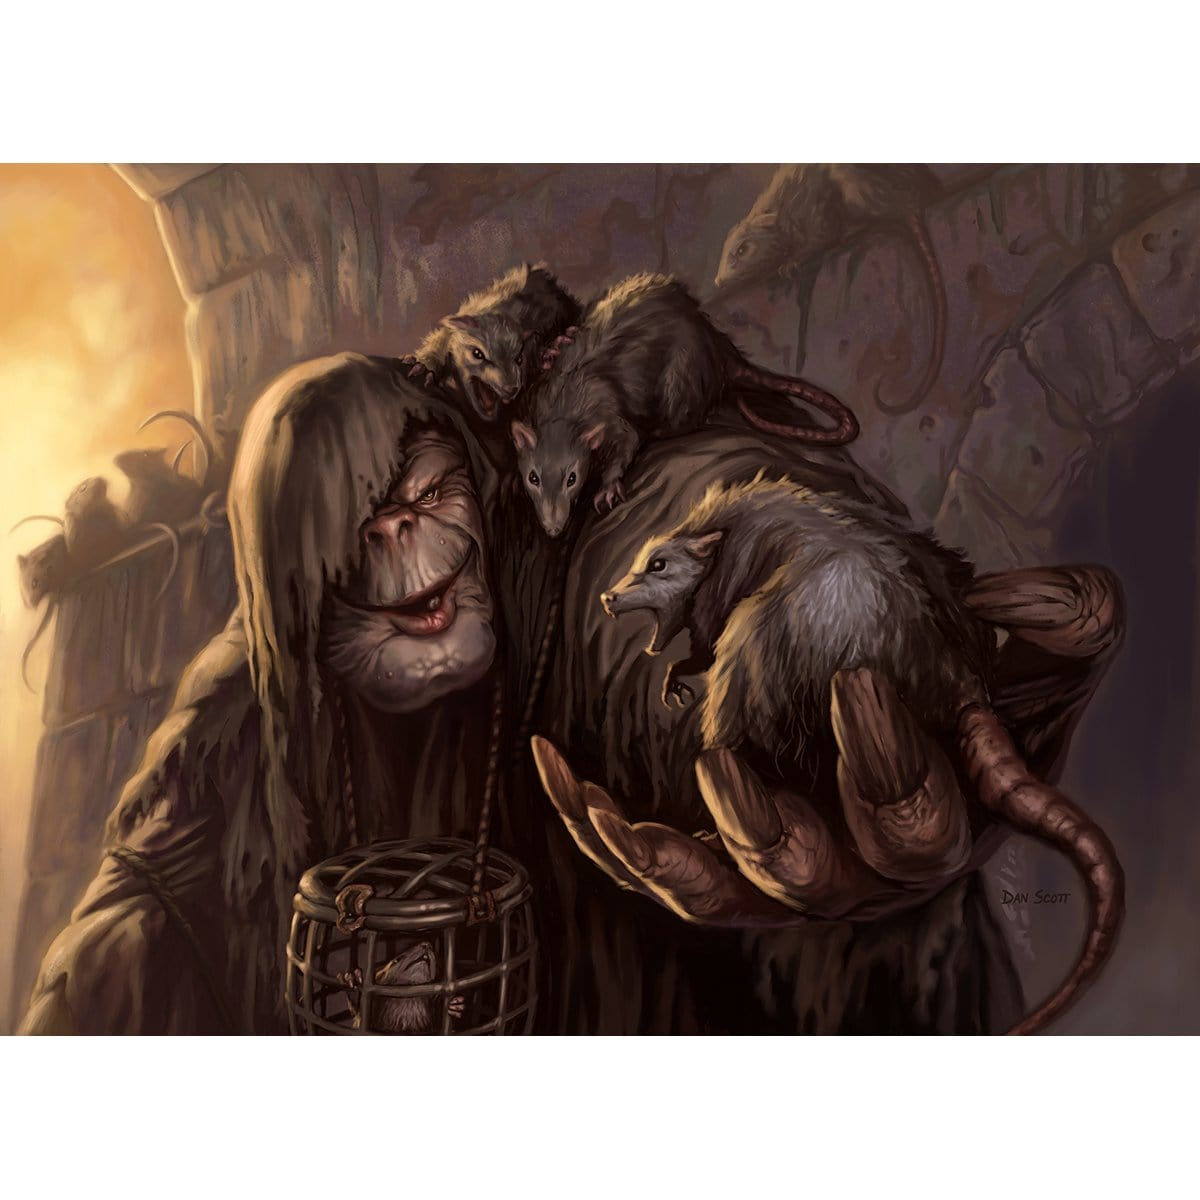 Rat Catcher Print - Print - Original Magic Art - Accessories for Magic the Gathering and other card games